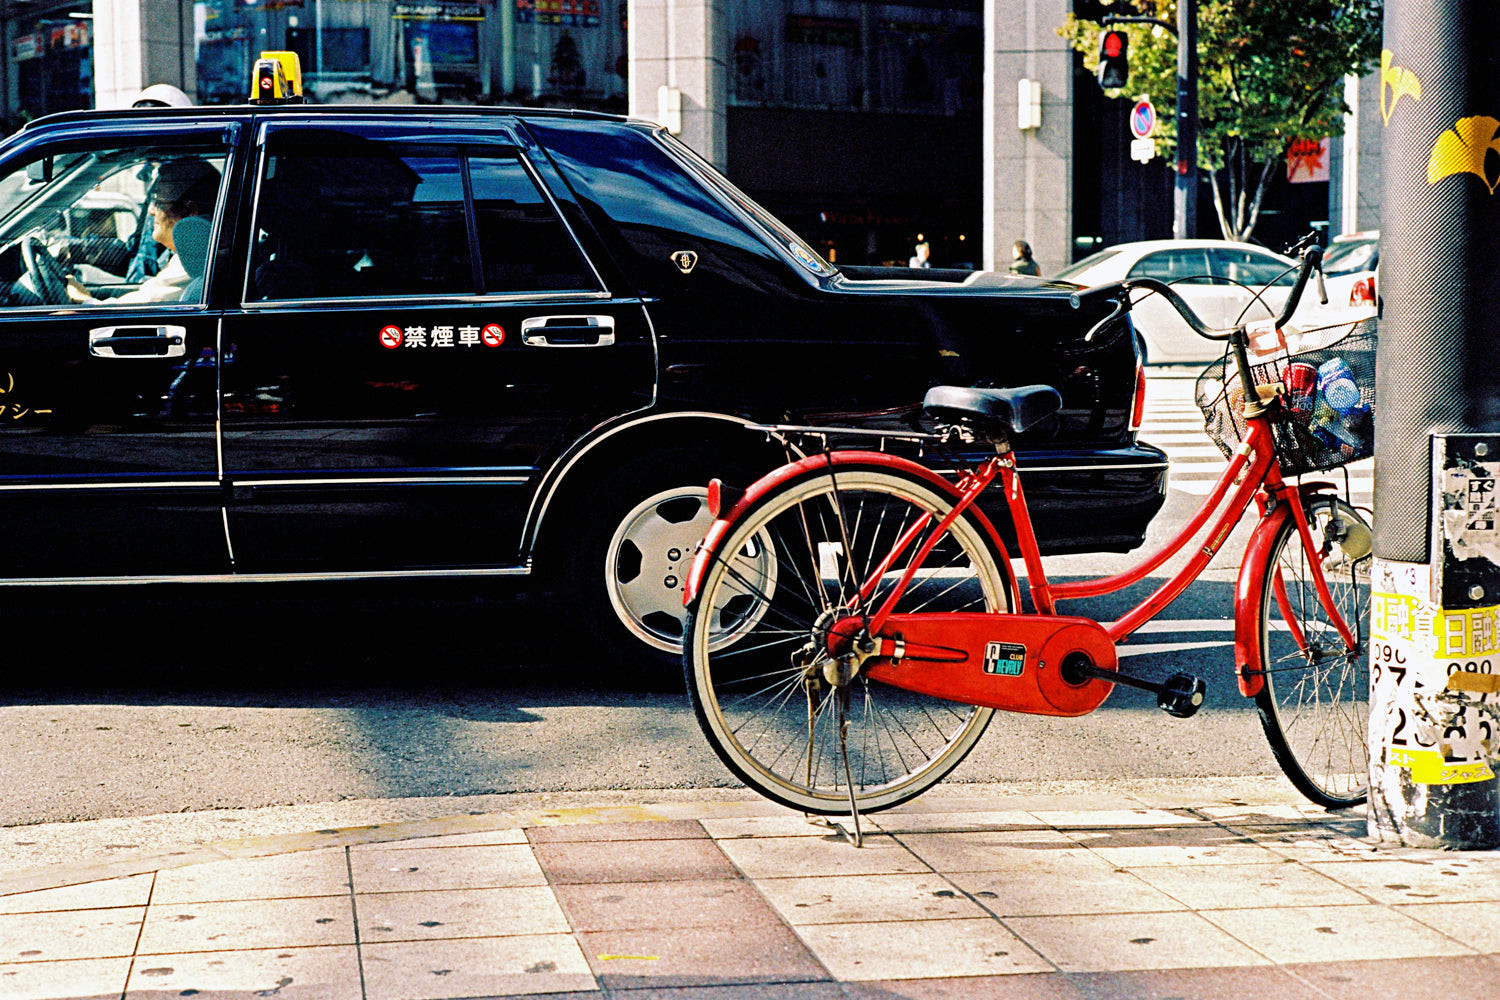 A photograph of a red bike leaning on a pole in a city street in Tokyo. There is a black taxi in the street.  Tokyo Japan.